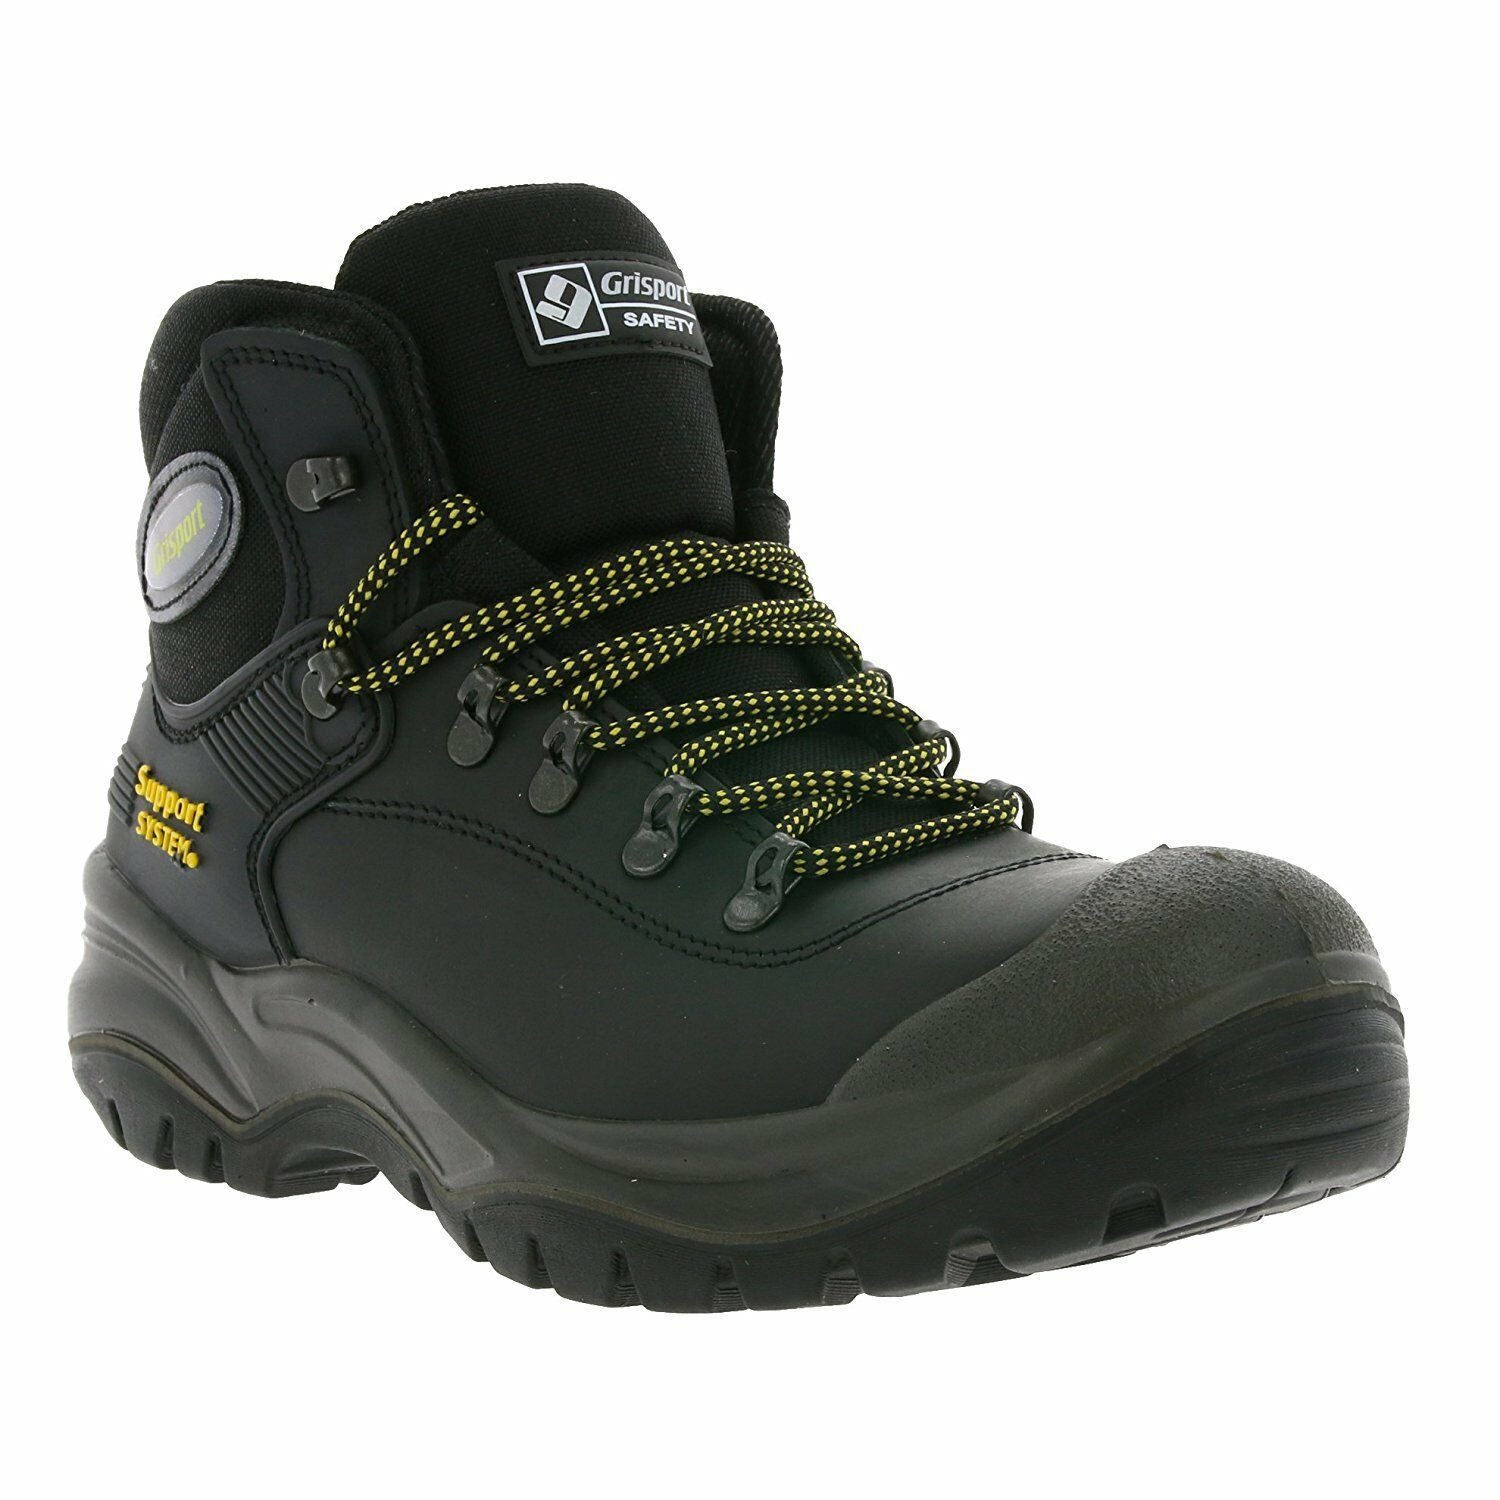 greyPORT 703LDV.16 black-Antinfortunistiche CORTINA S3 -shoes da Lavgold-Trekking